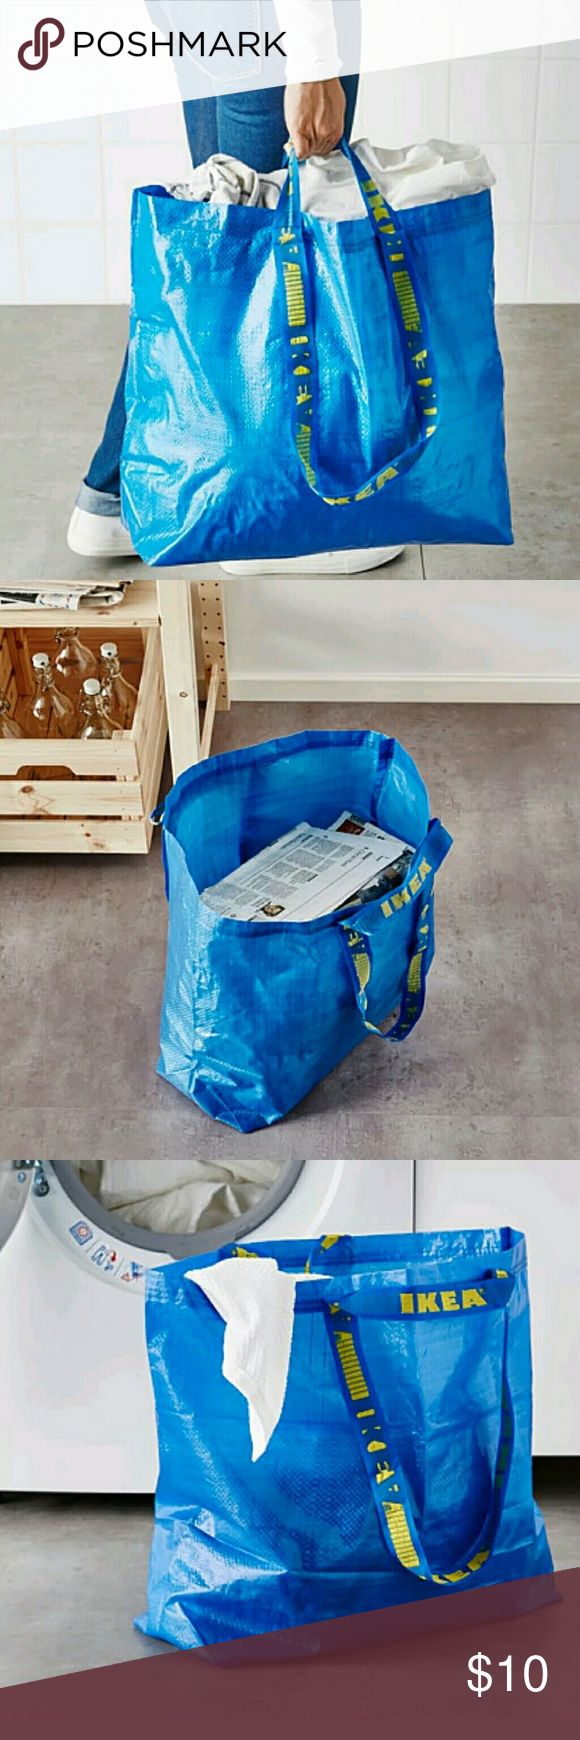 X6 10 Gallon Medium Grocery Shopping Bags 17.75 in x 17.75 in x 7 in   As with any tote bag, these dimensions will expand while shortening the other dimensions.  Features include:  2 sets of handles, one for the shoulder & one for the hand  55 pound maximum load  Medium 10 gallon capacity  Easy to clean, just rinse and dry  Suitable for recycling  Made of 100% polypropylene  Very strong and reusable which is great for the environment   All items come from a smoke free and pet free…